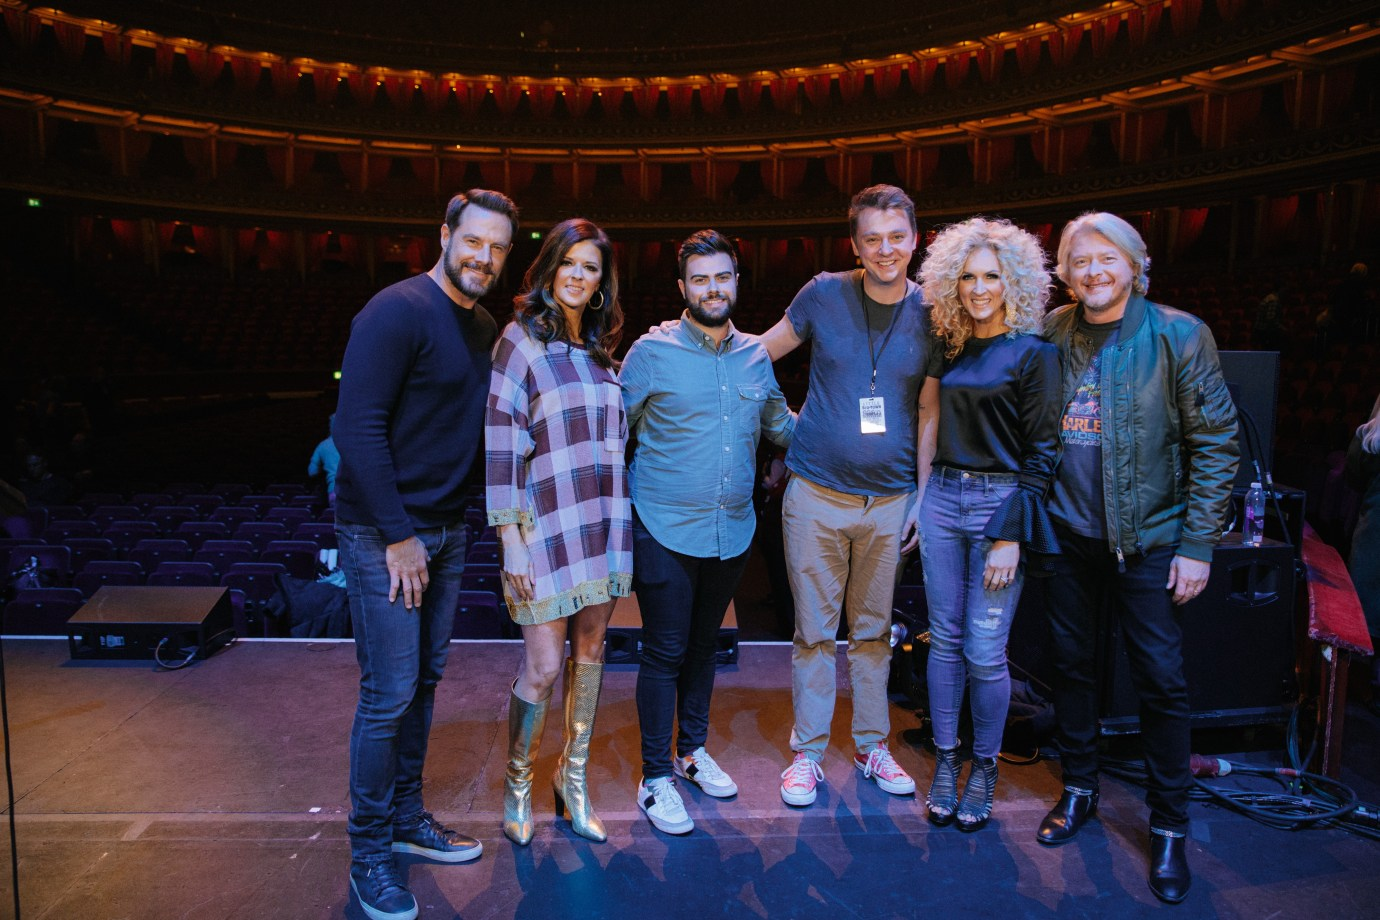 Meeting Little Big Town on stage at the Royal Albert Hall